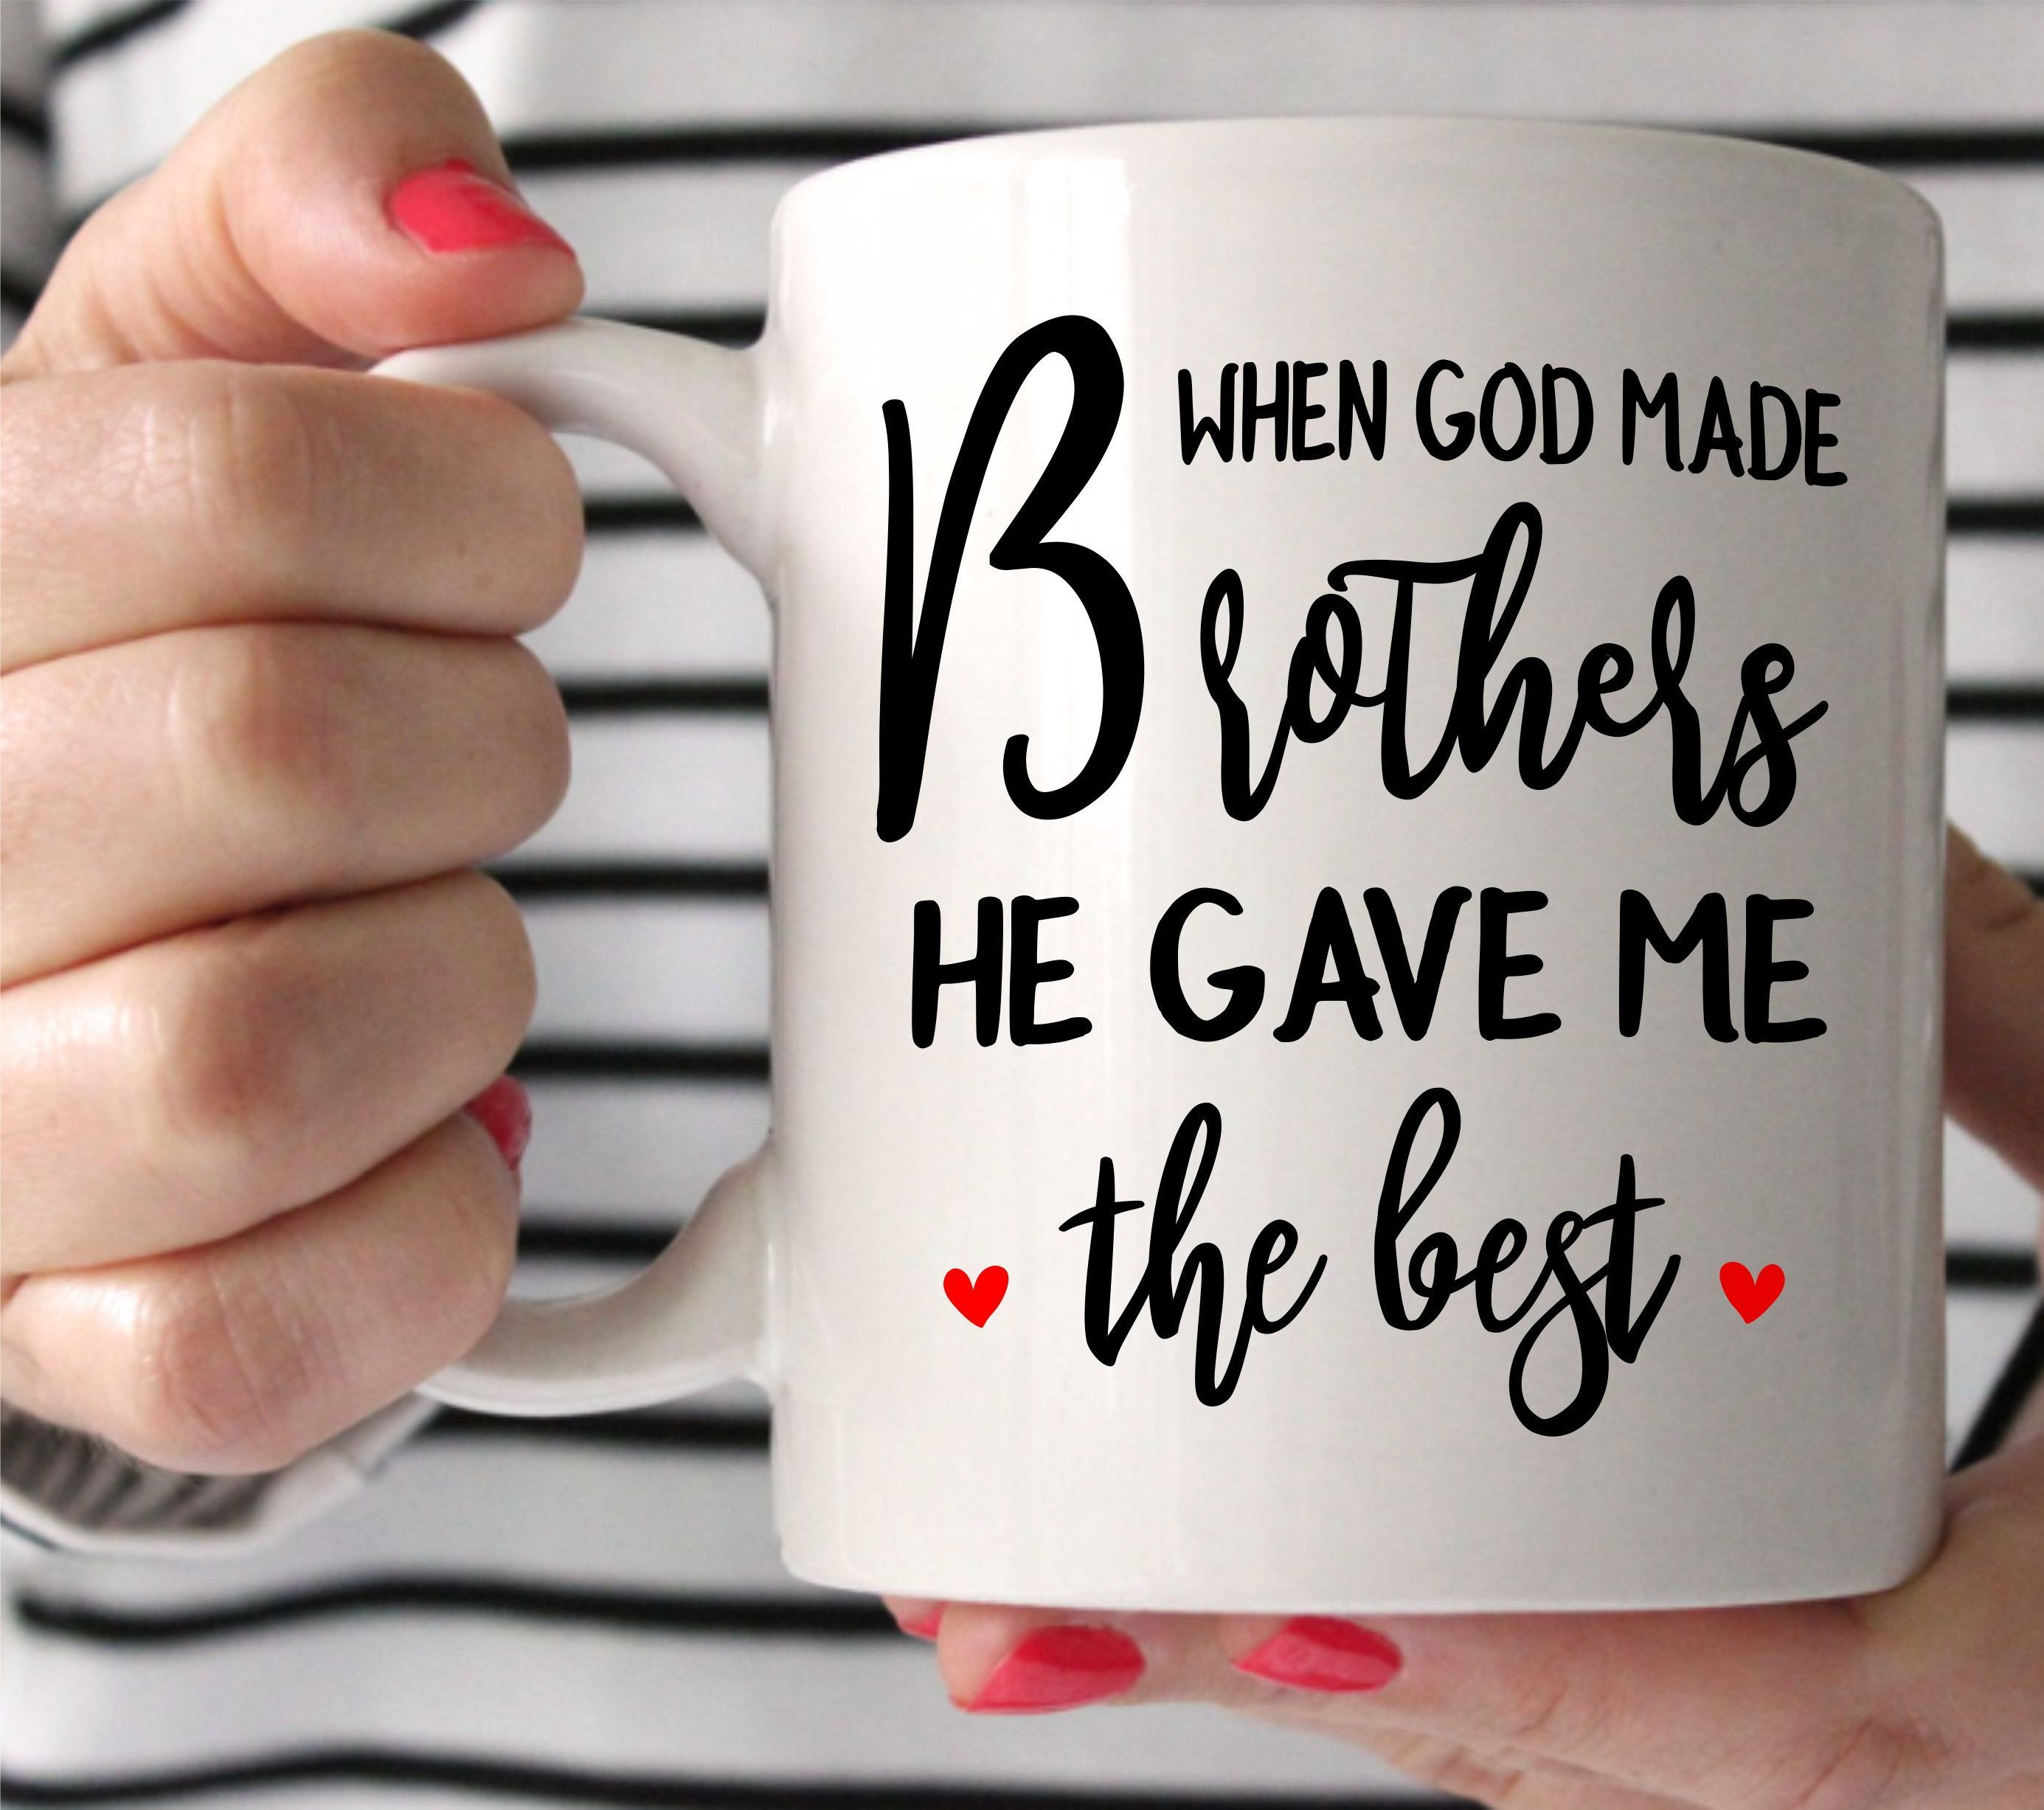 Best brother mugbrother giftbrother wedding giftgift